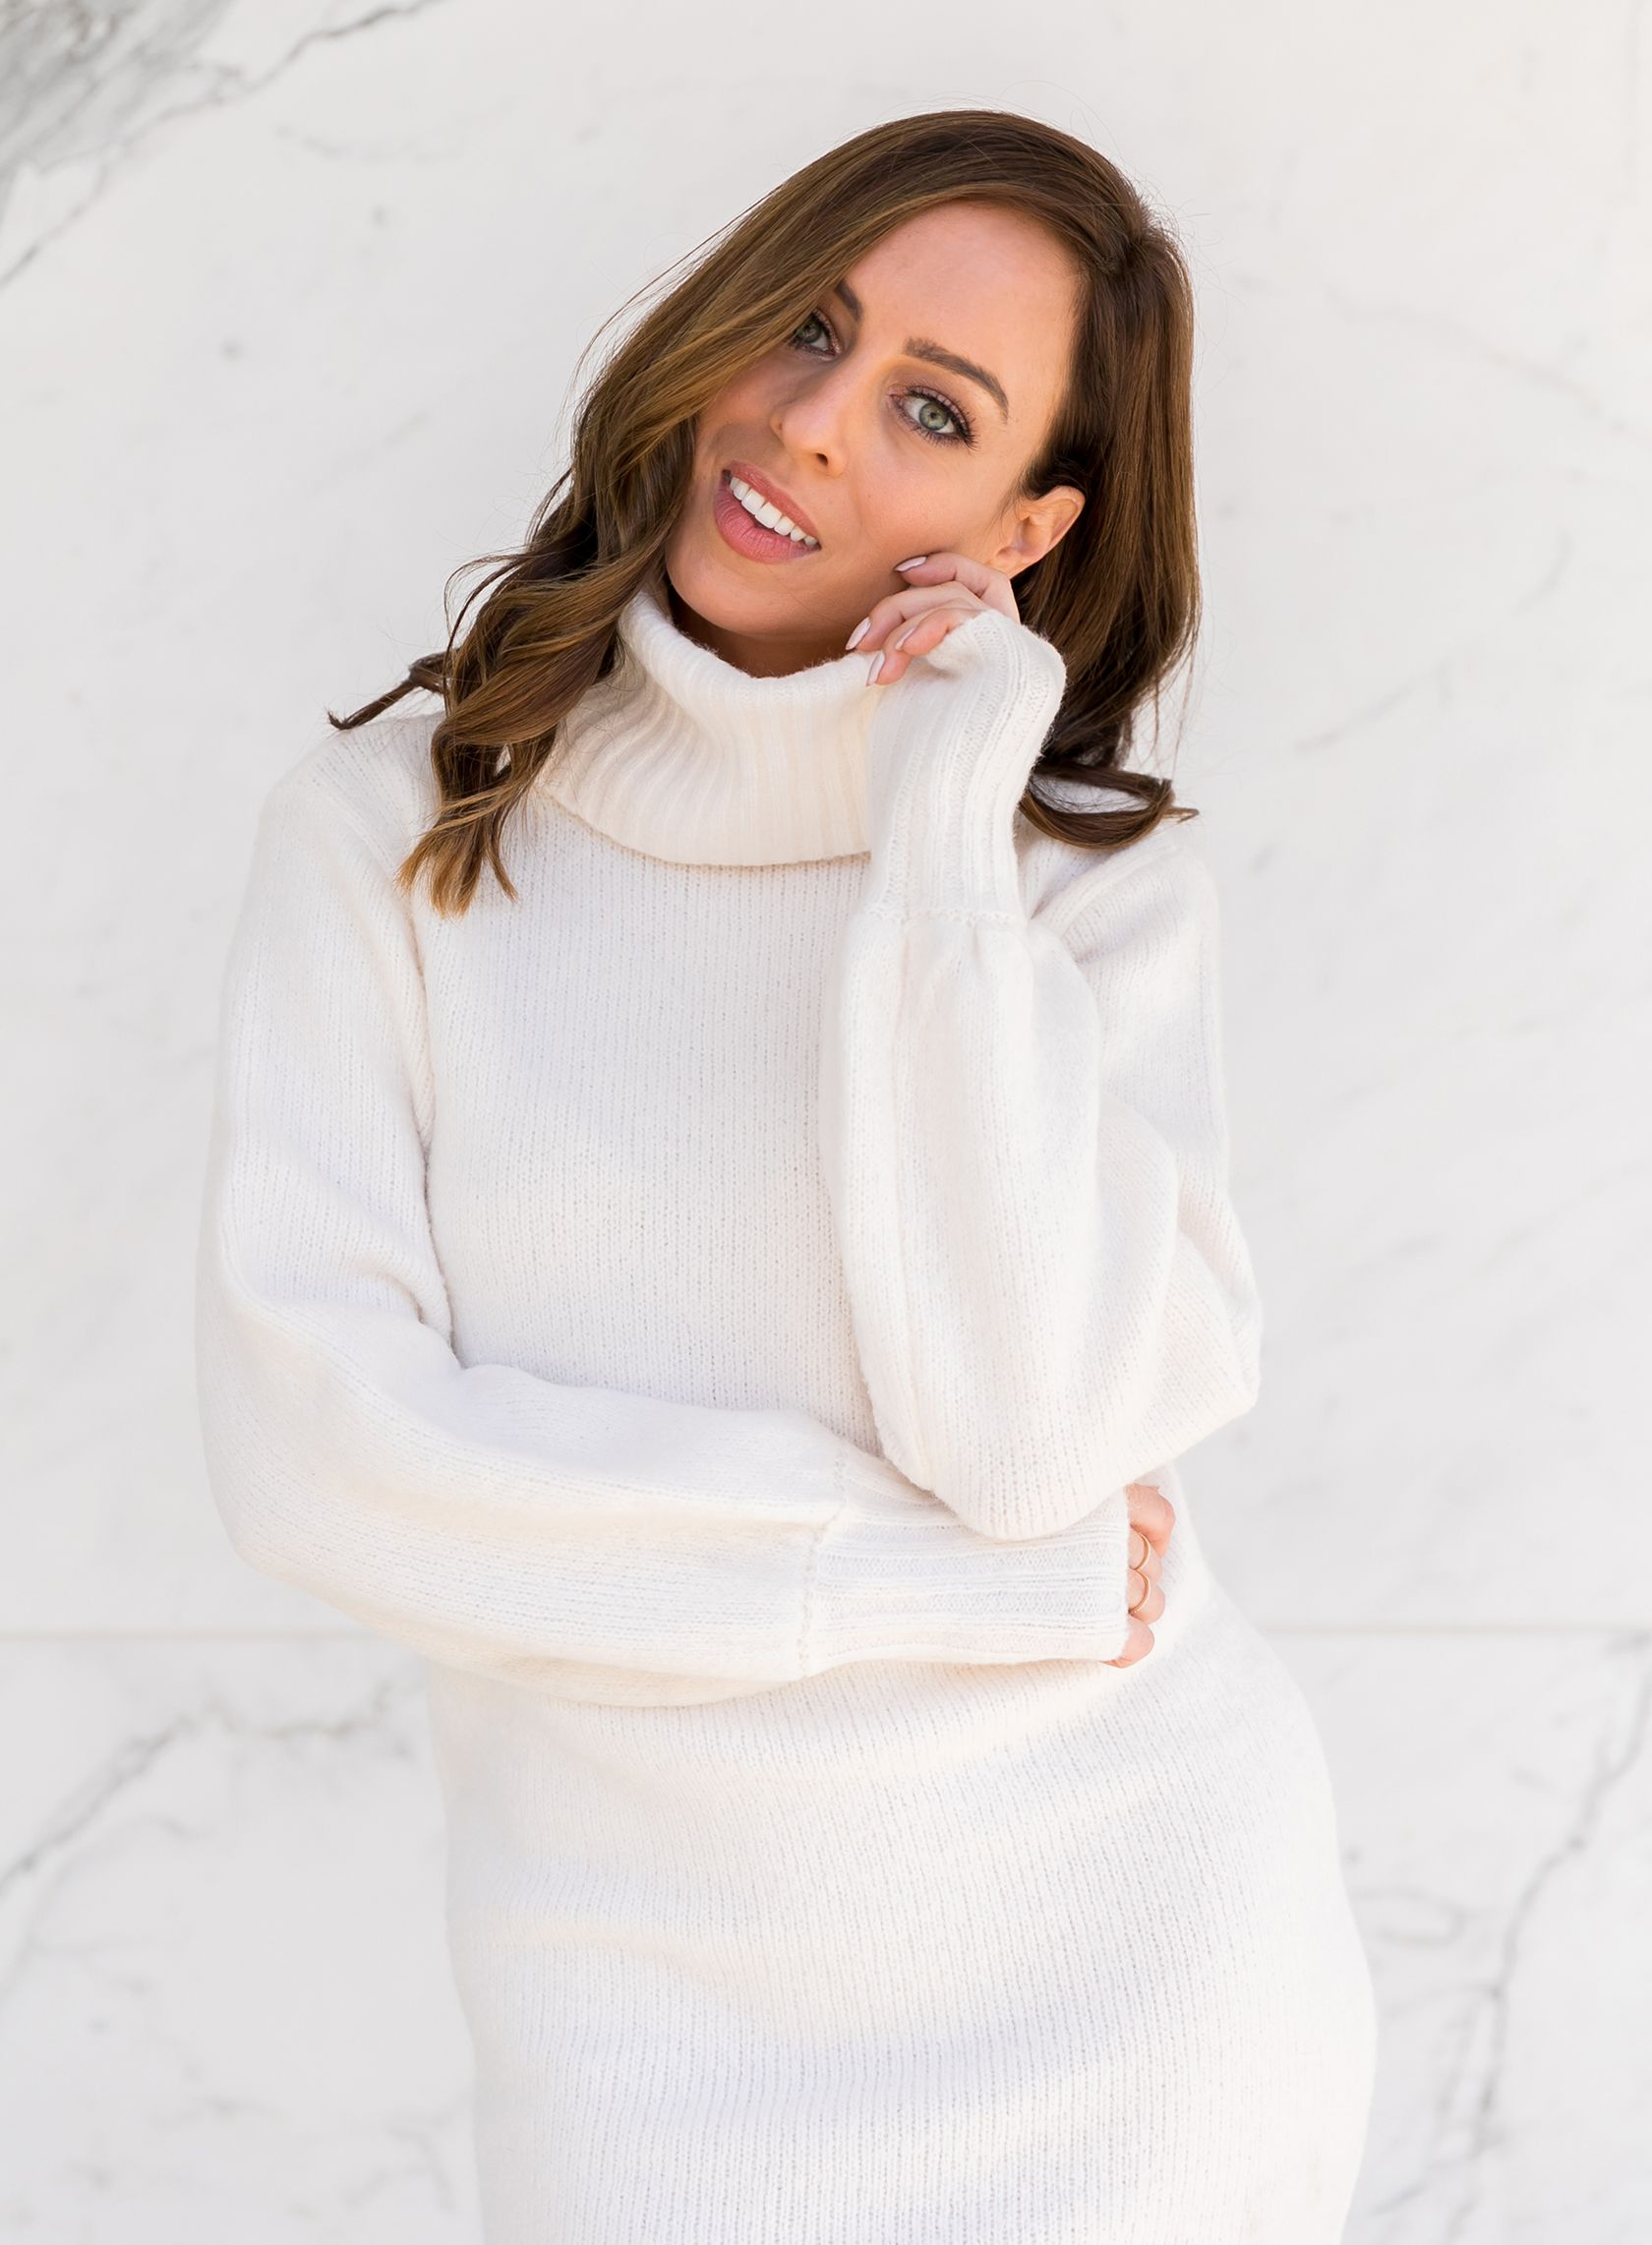 6db16058b832 Sydne Style wears guess sweater dress for cozy winter style #winterwhite  #turtleneck #white #marble #sweaterdress @sydnesummer